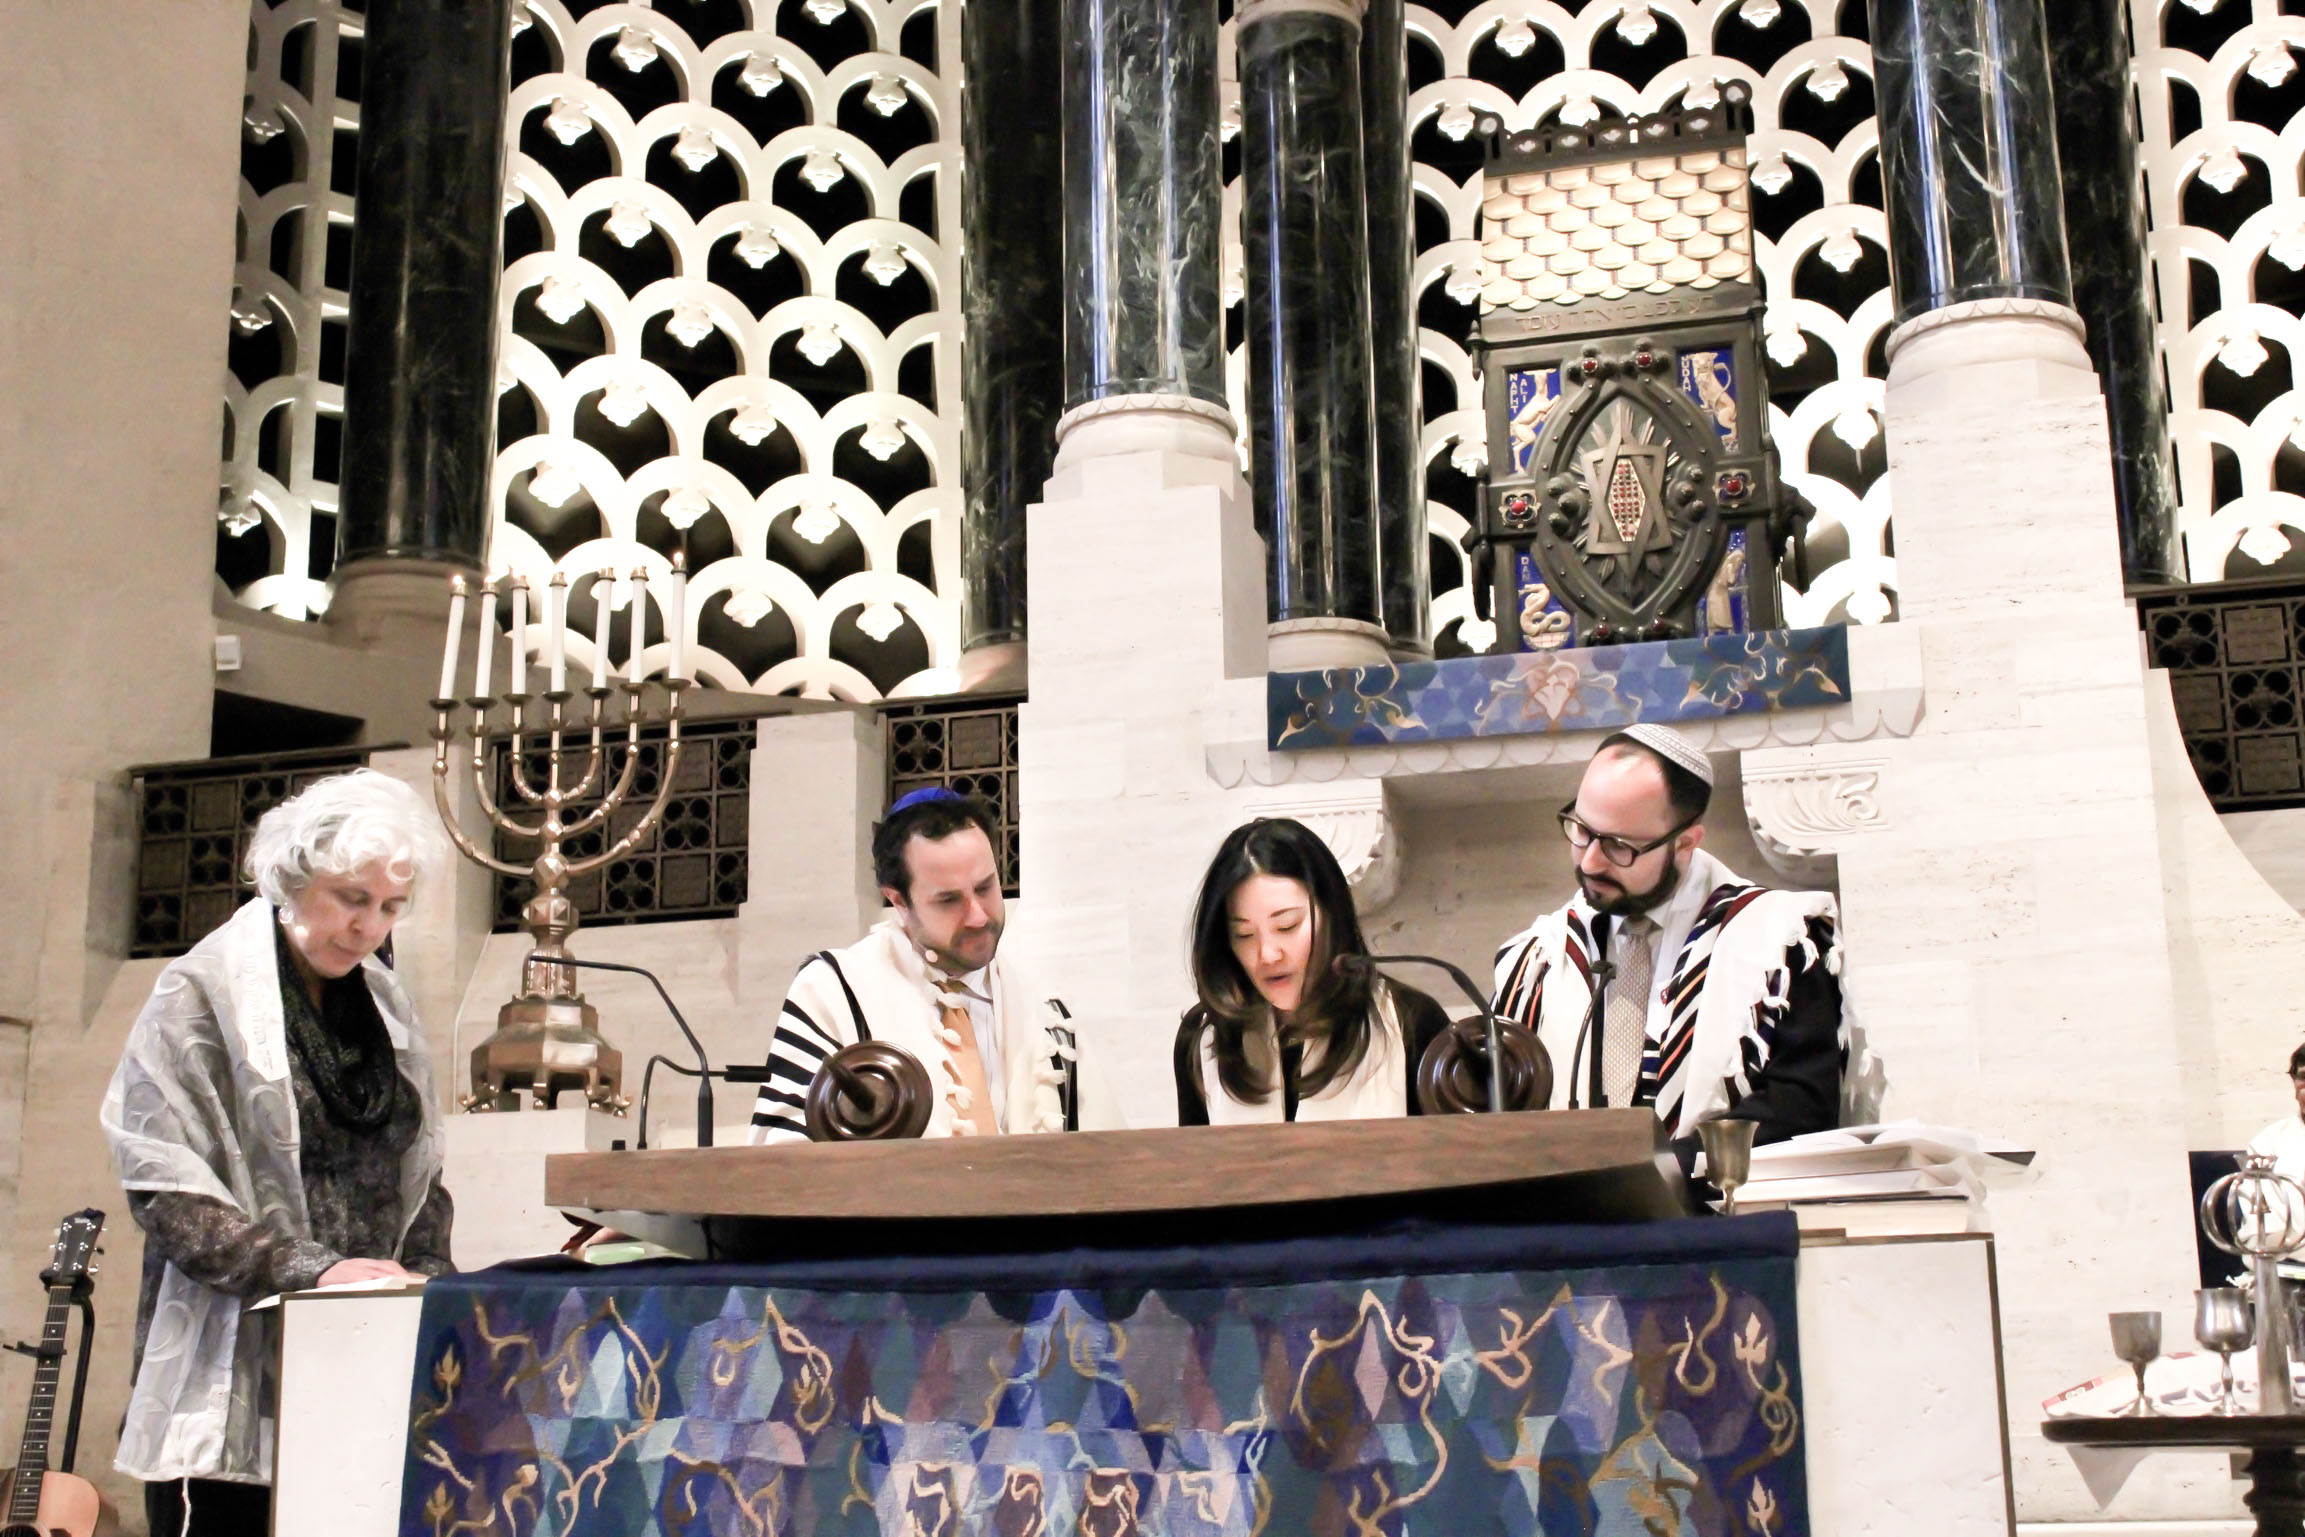 Kristin reading from the Torah